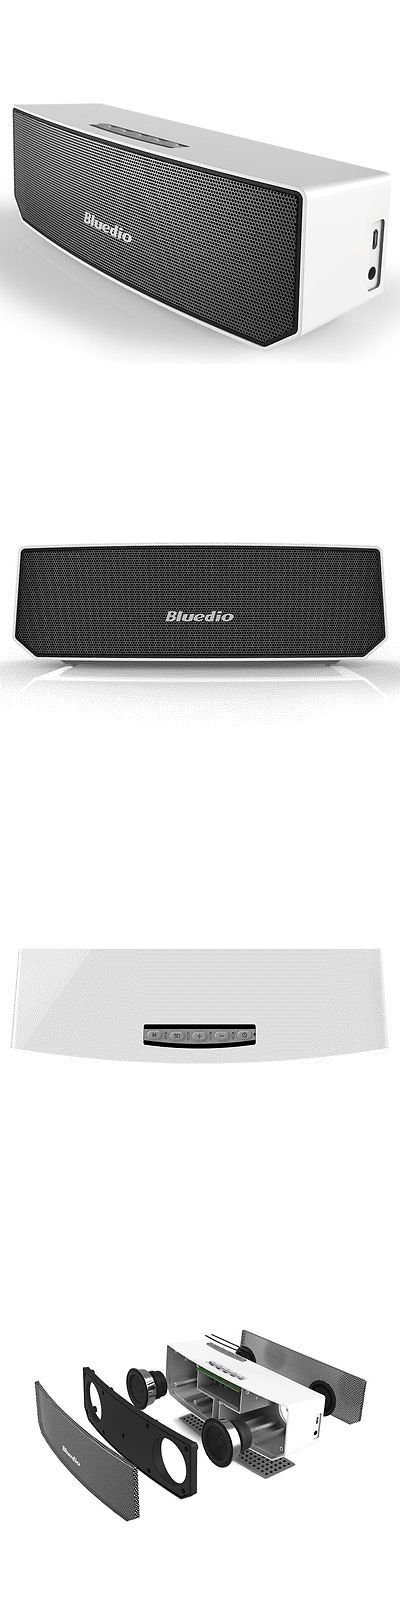 electronics: Bluedio Bs-3 Camel Portable Bluetooth Wireless Stereo Speaker With Mic For -> BUY IT NOW ONLY: $48.19 on eBay!